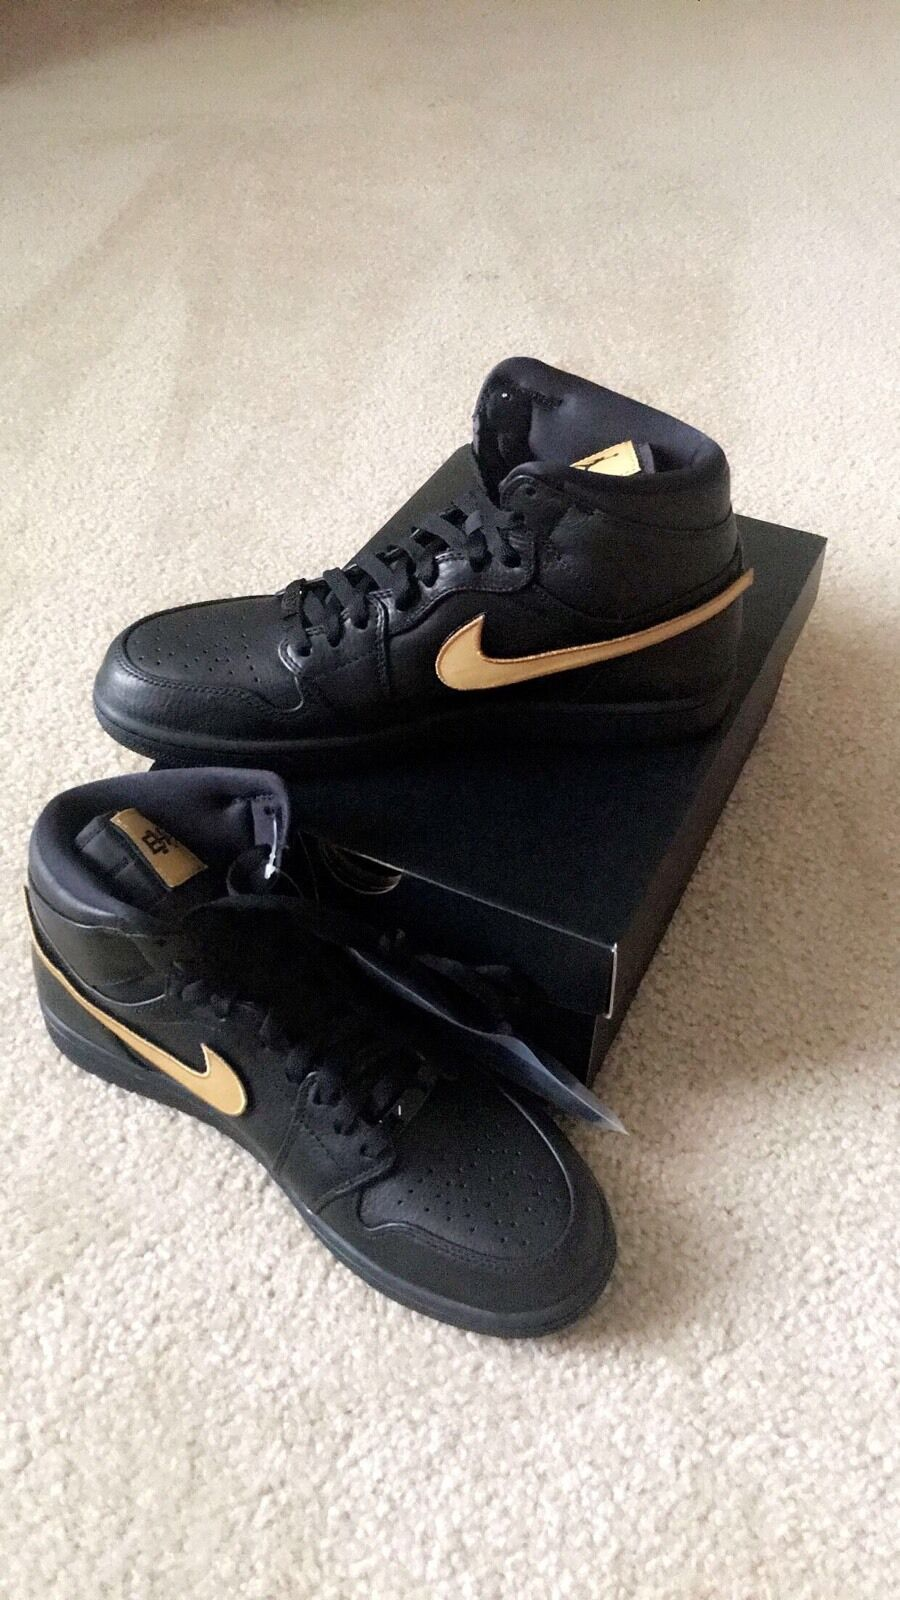 Air Jordan 1 Retro High BHM Black History Month - MEN 11.5- EXCLUSIVE The most popular shoes for men and women